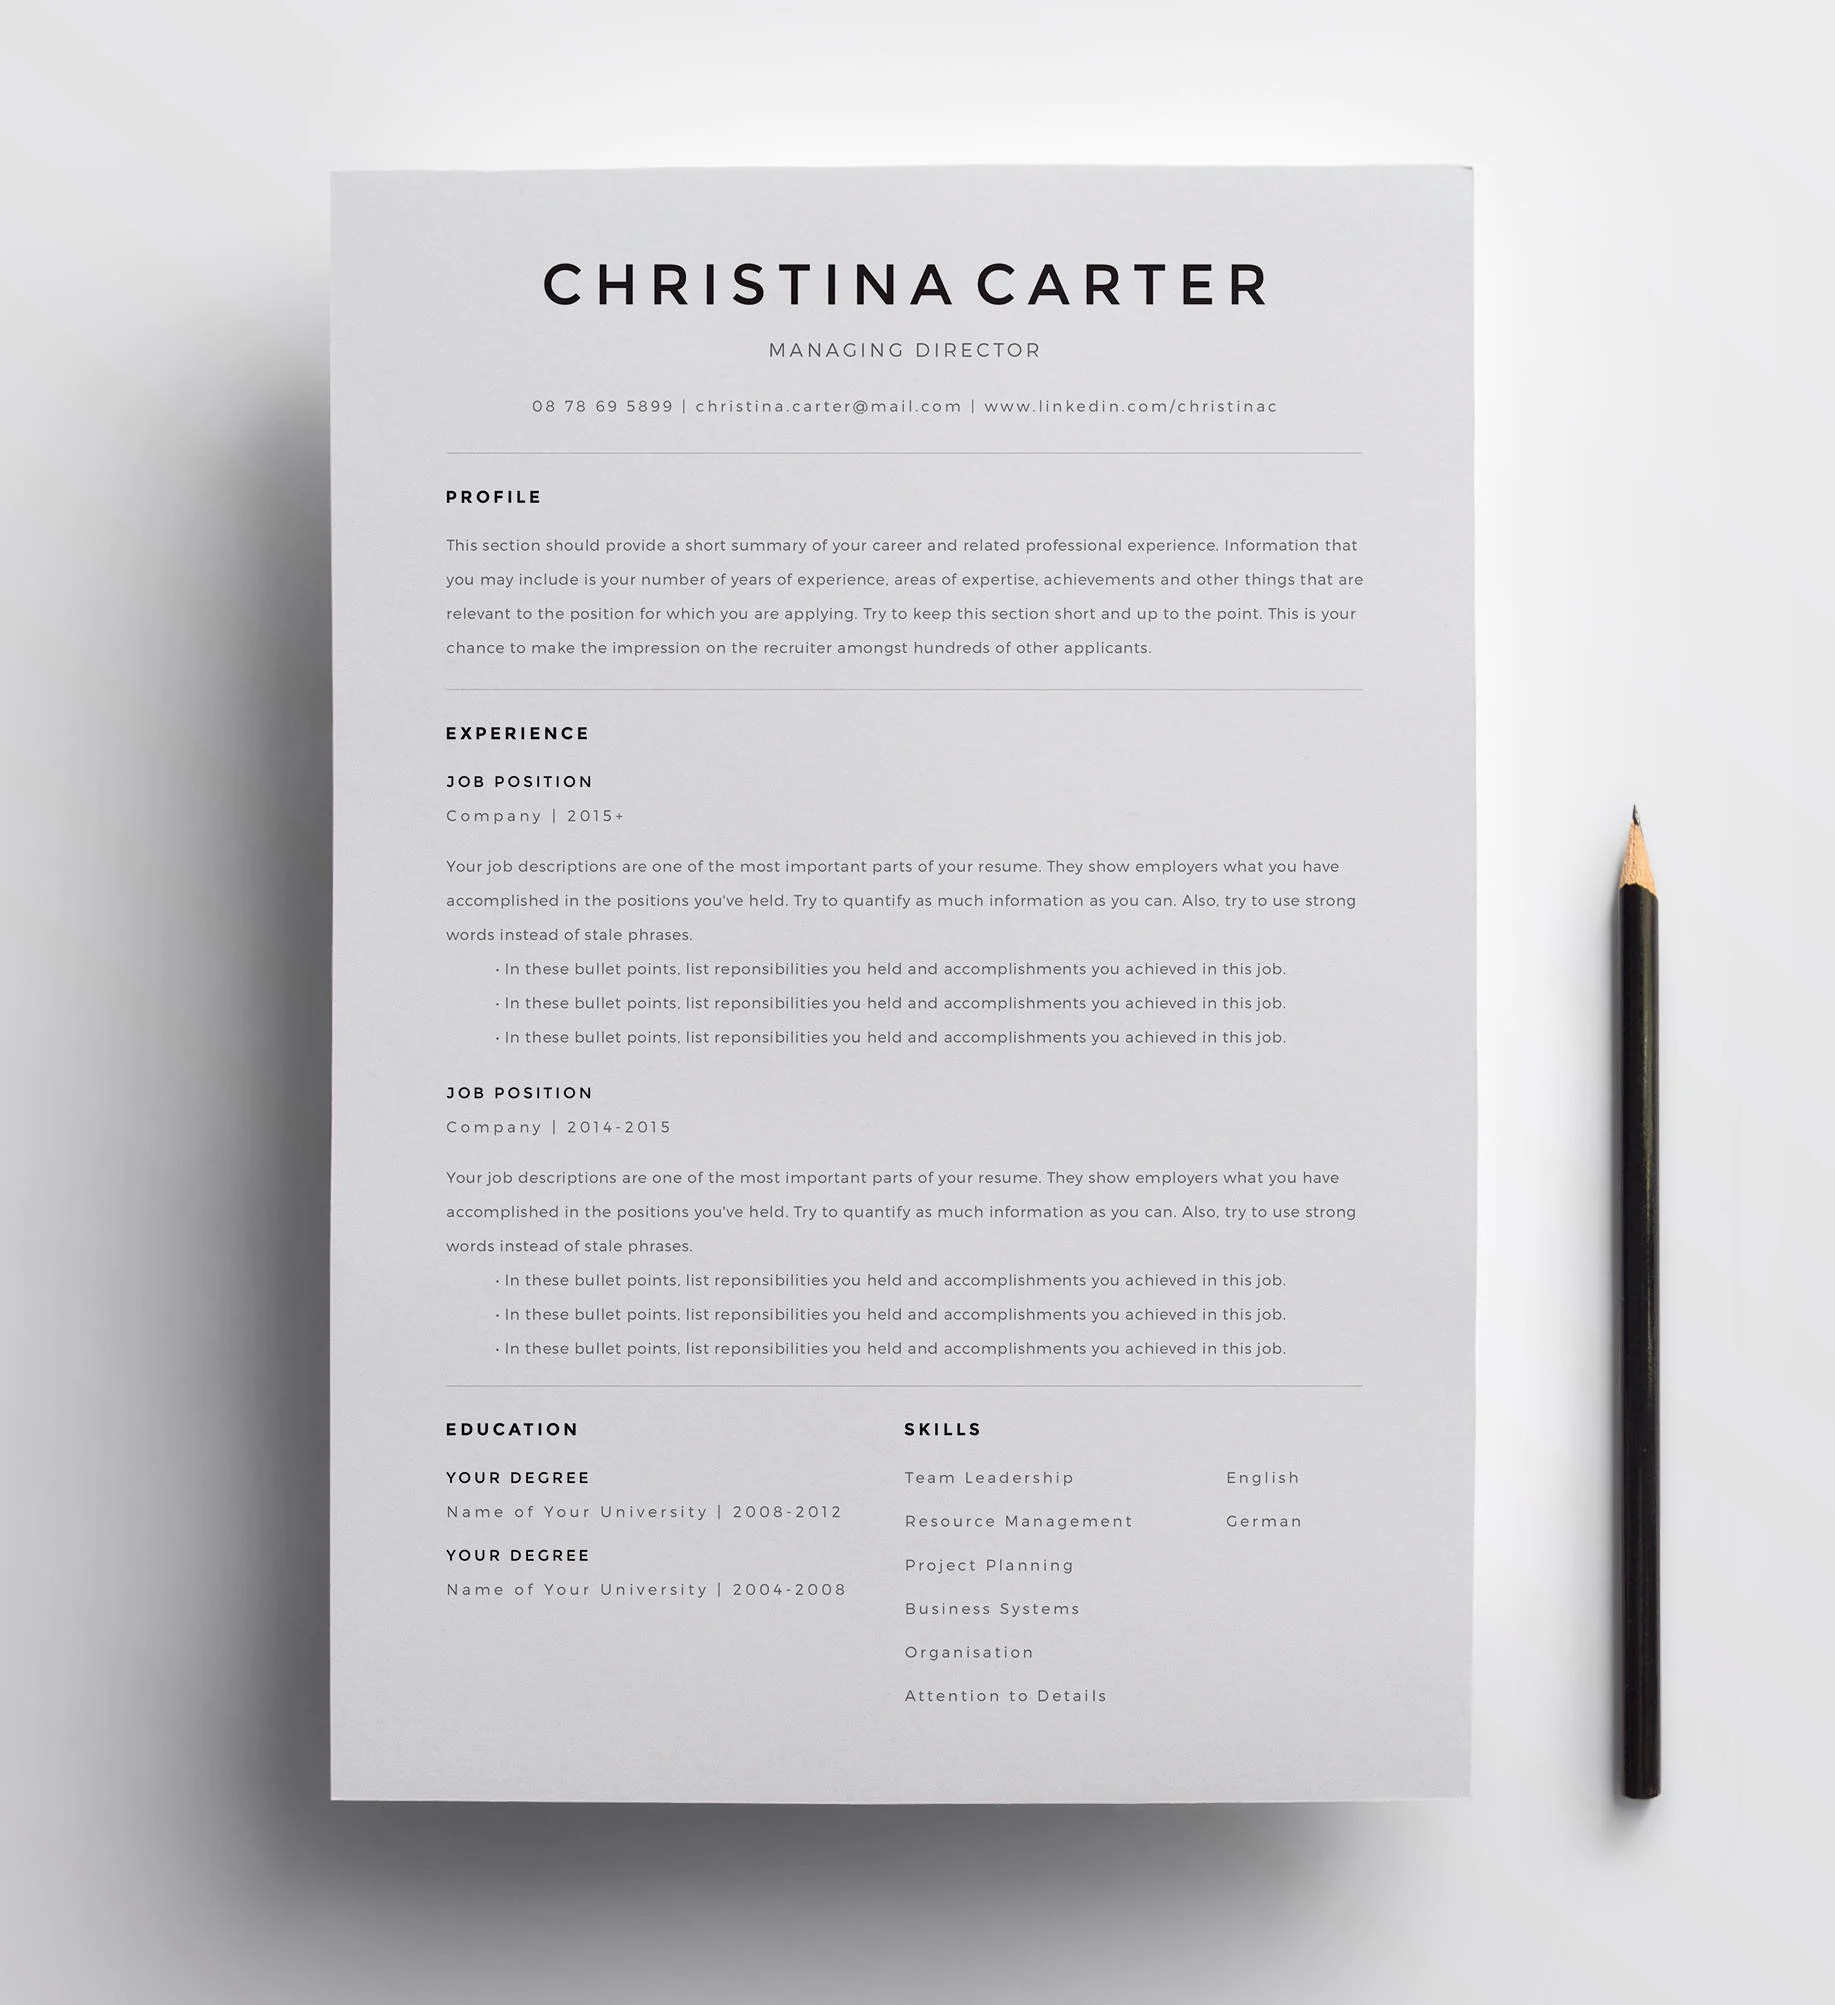 Template Of A Resume Creative Resume Template Minimalist Resume Resume Modern Resume Cv Template Cv Clean Resume Professional Resume Template For Word